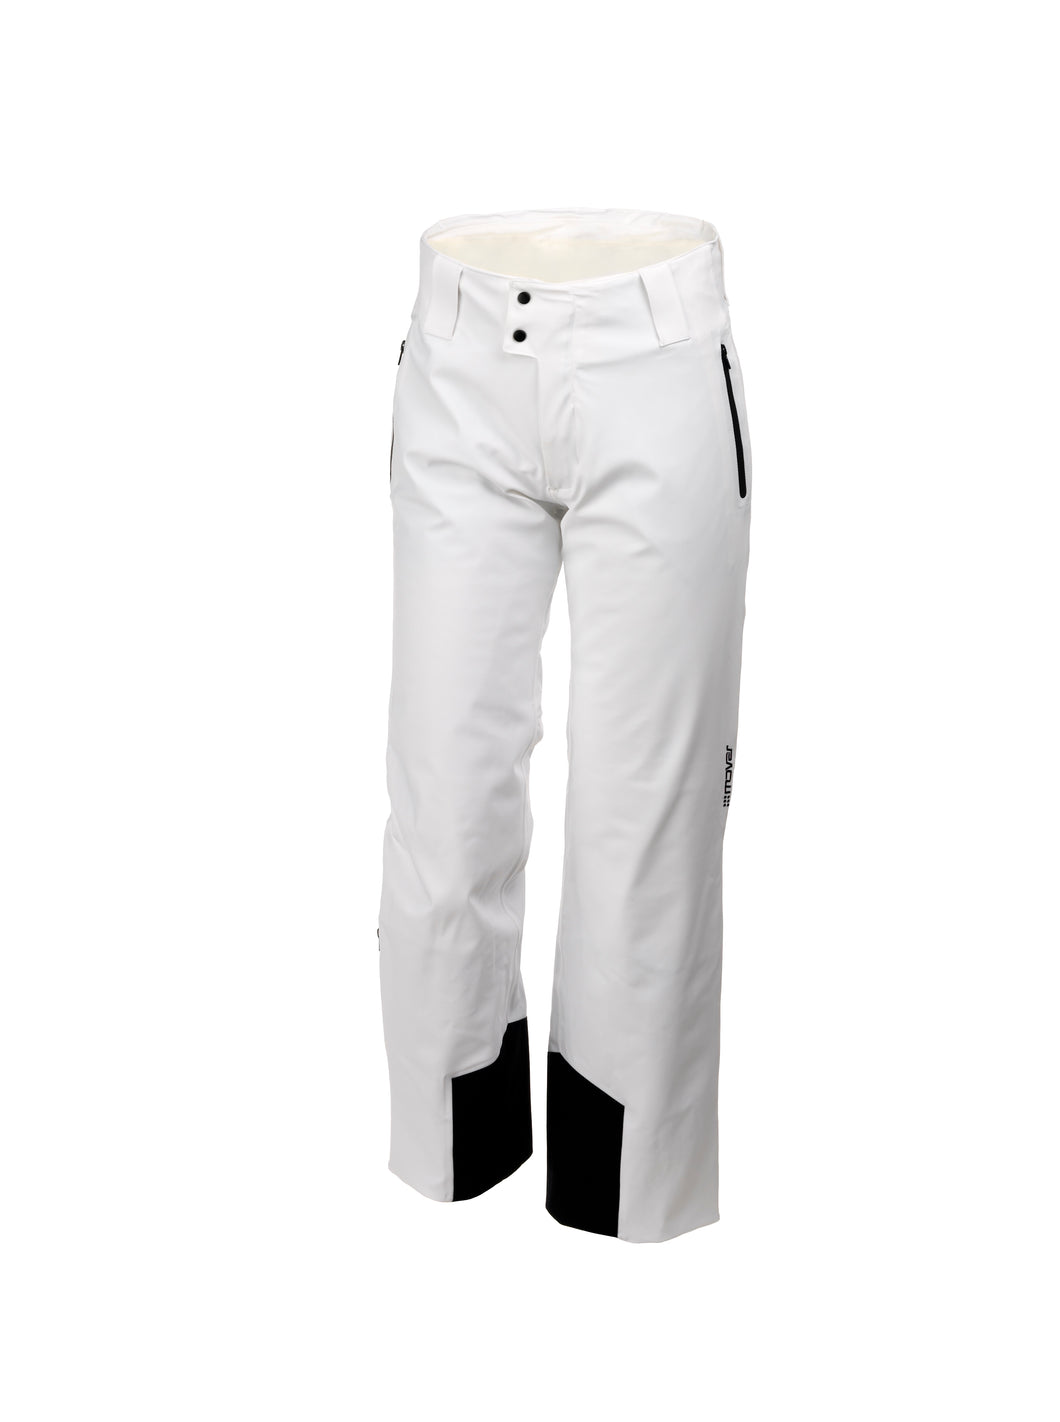 M's Stretch Trousers